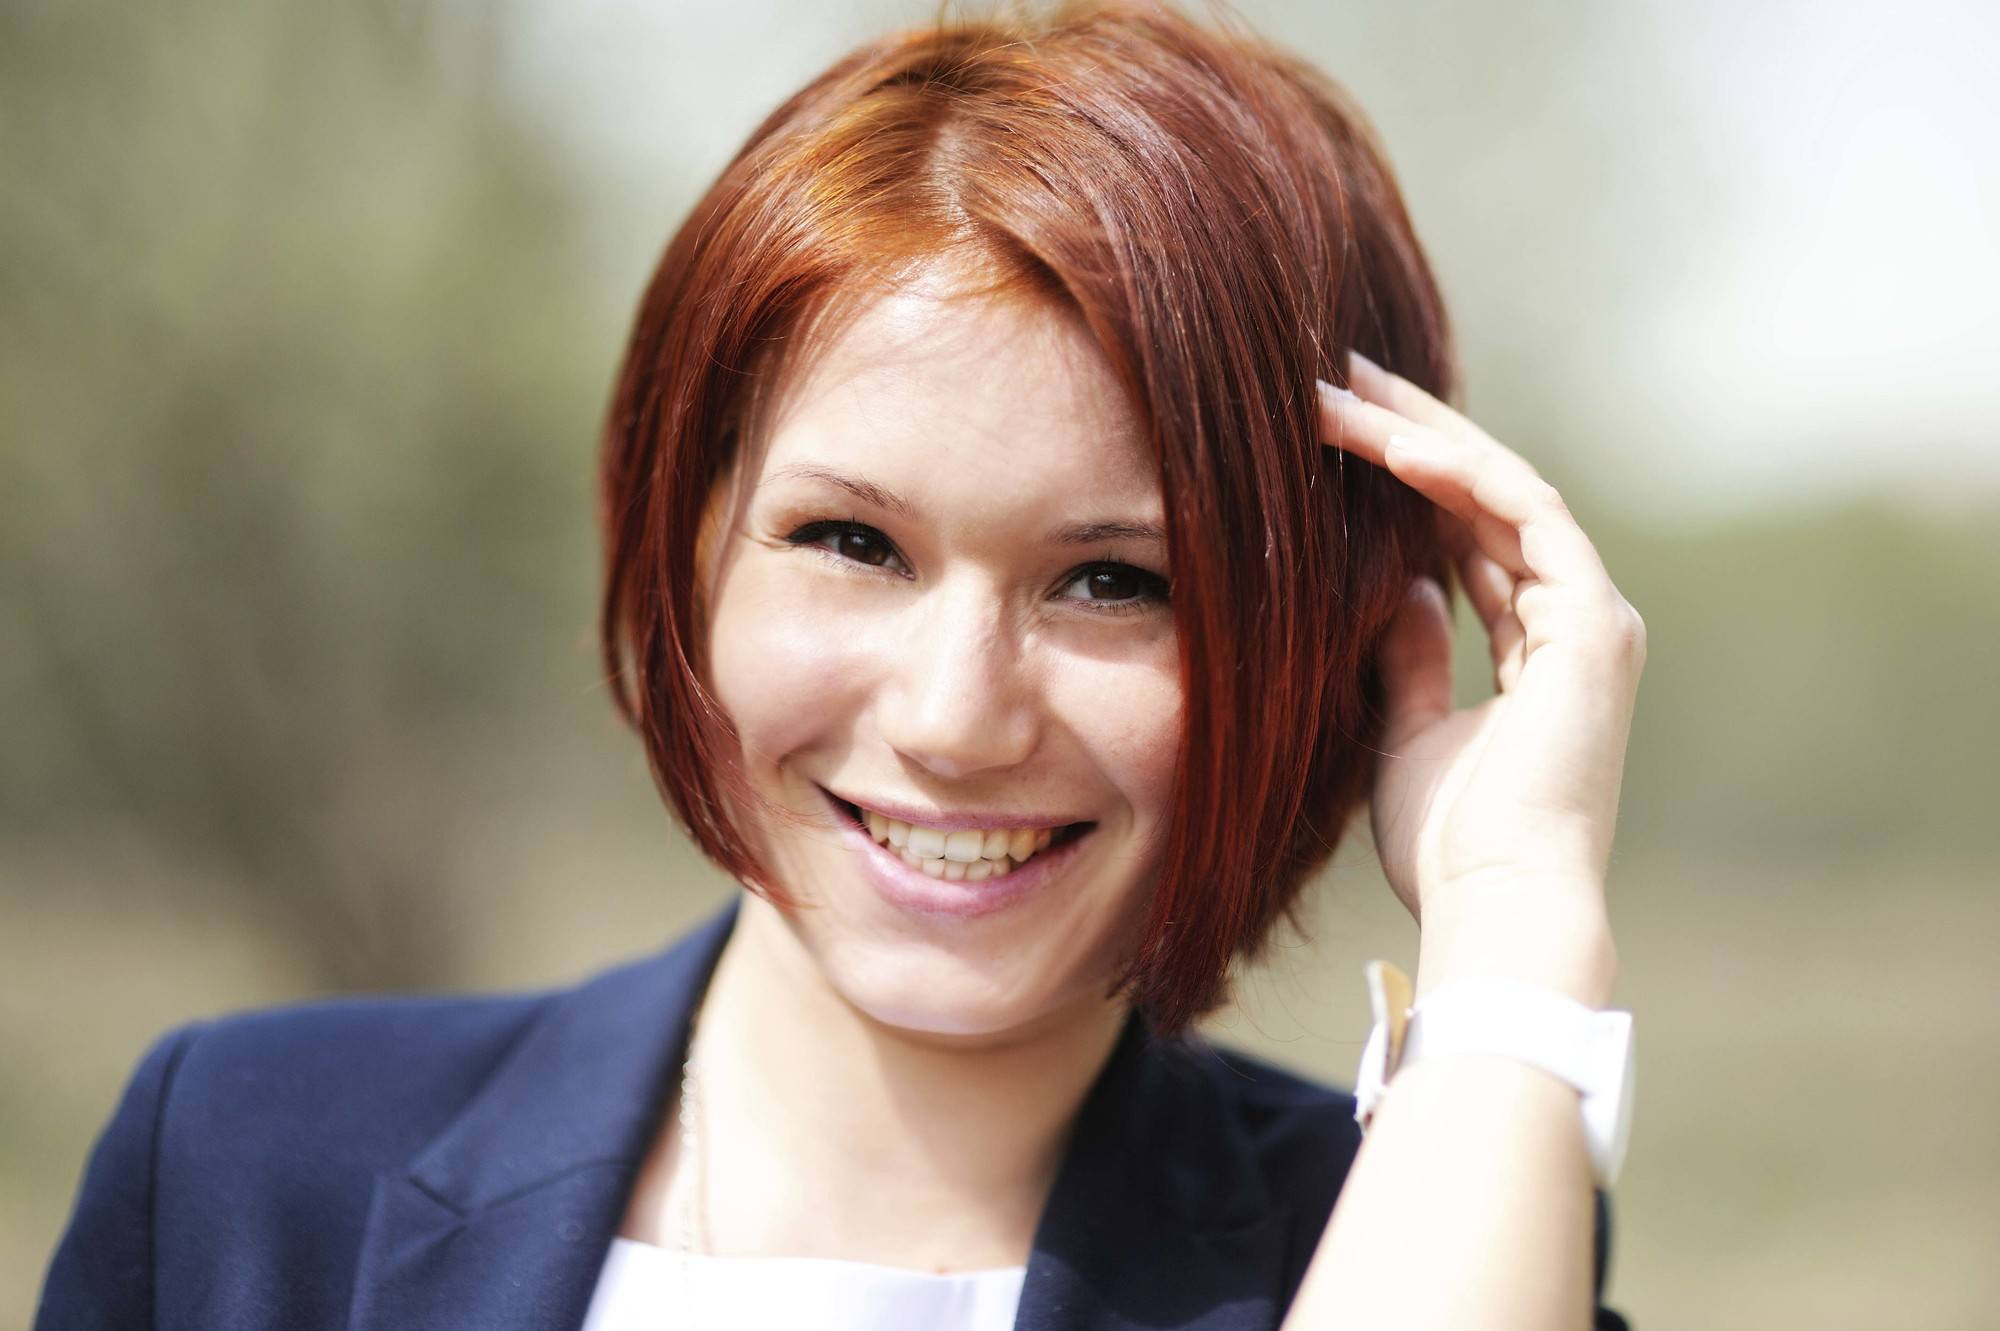 red hair woman with super short hair for round face